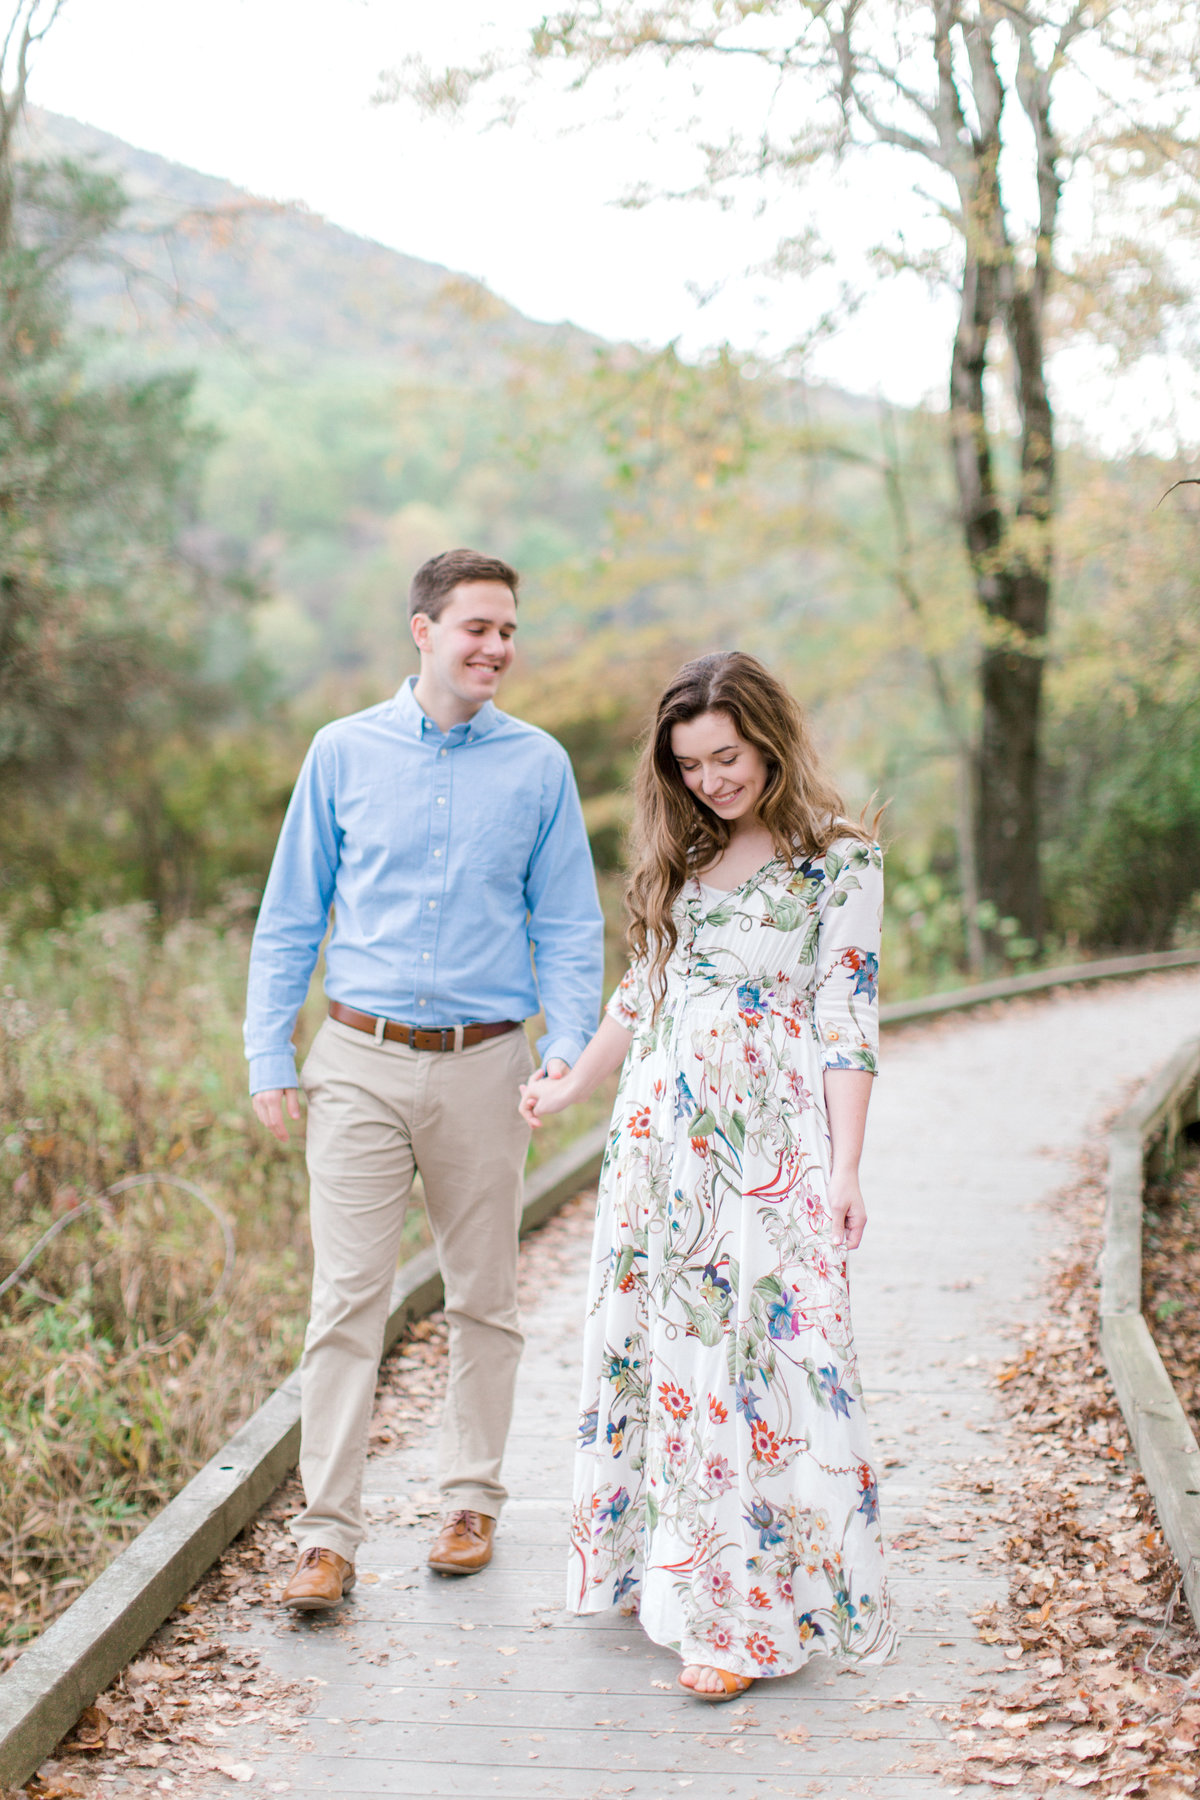 CouplesPORTFOLIO -2017-10-21 Miranda and Sam Engagement 0602